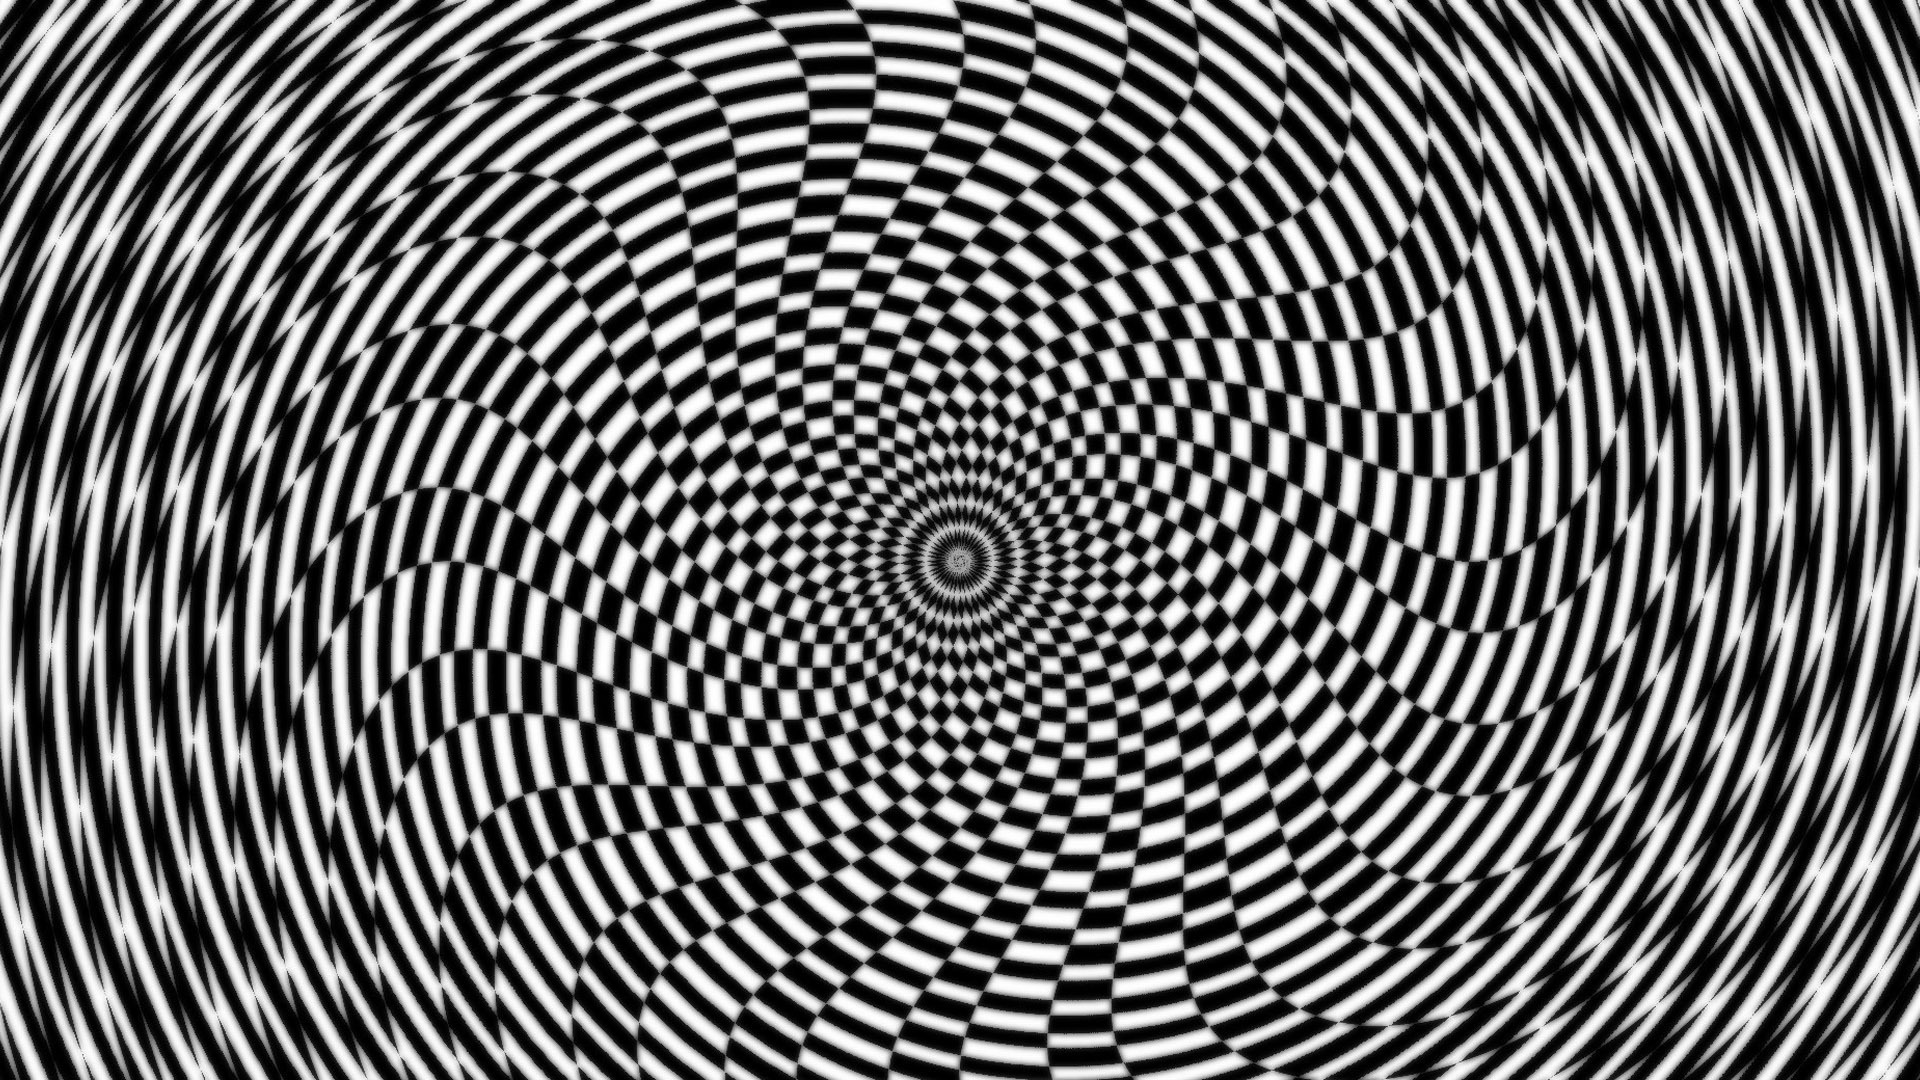 Optical Illusions Wallpaper